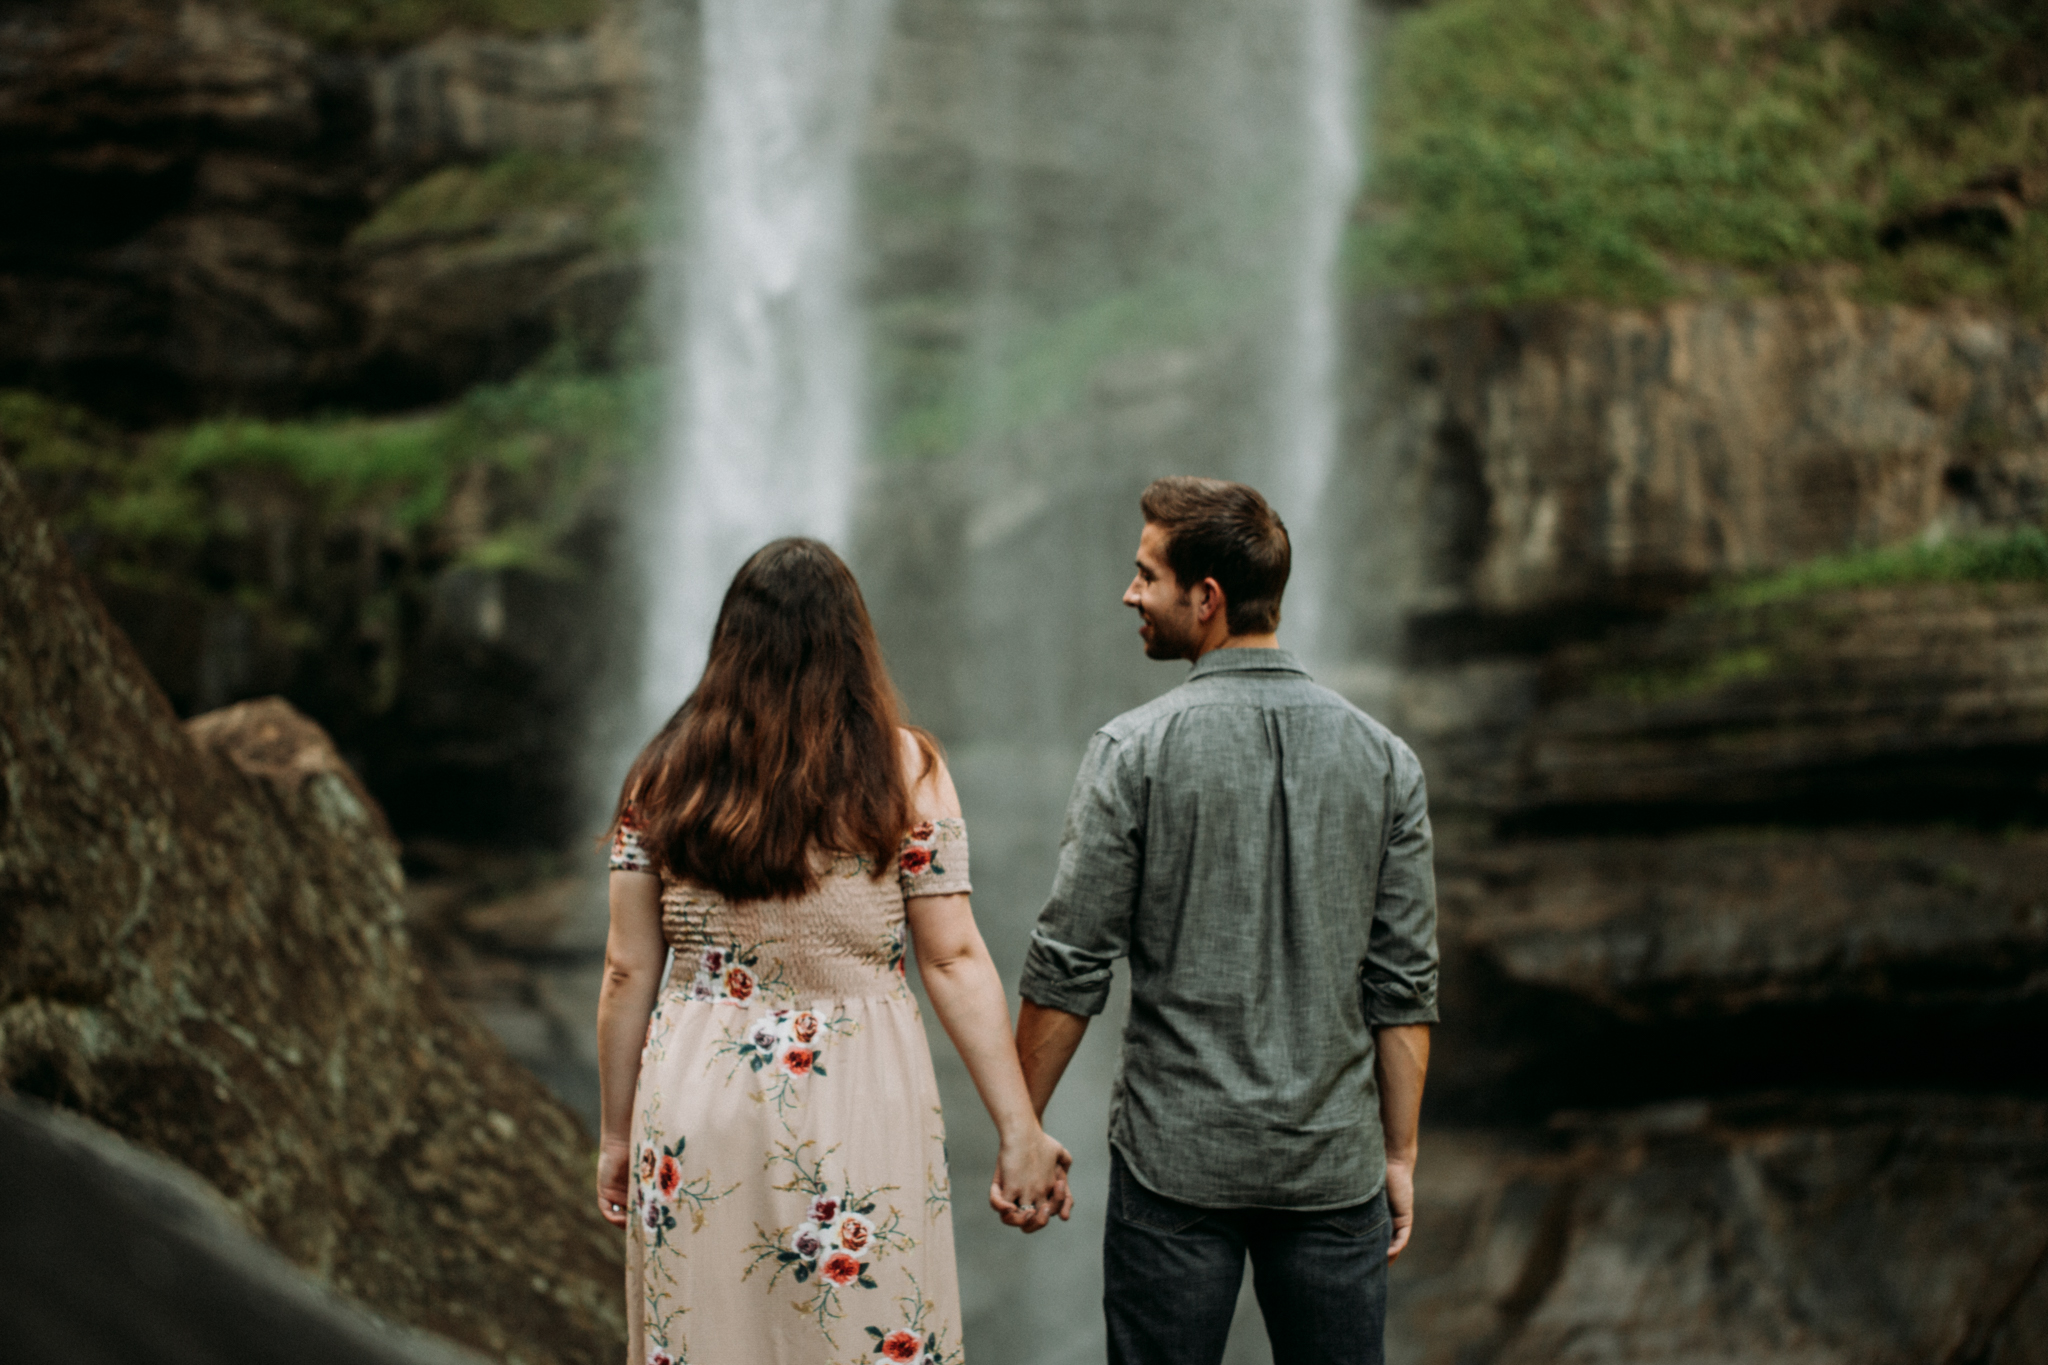 MonicaLeavell-Carolinas-Georgia-Adventure-Engagement-Photographer-16.jpg